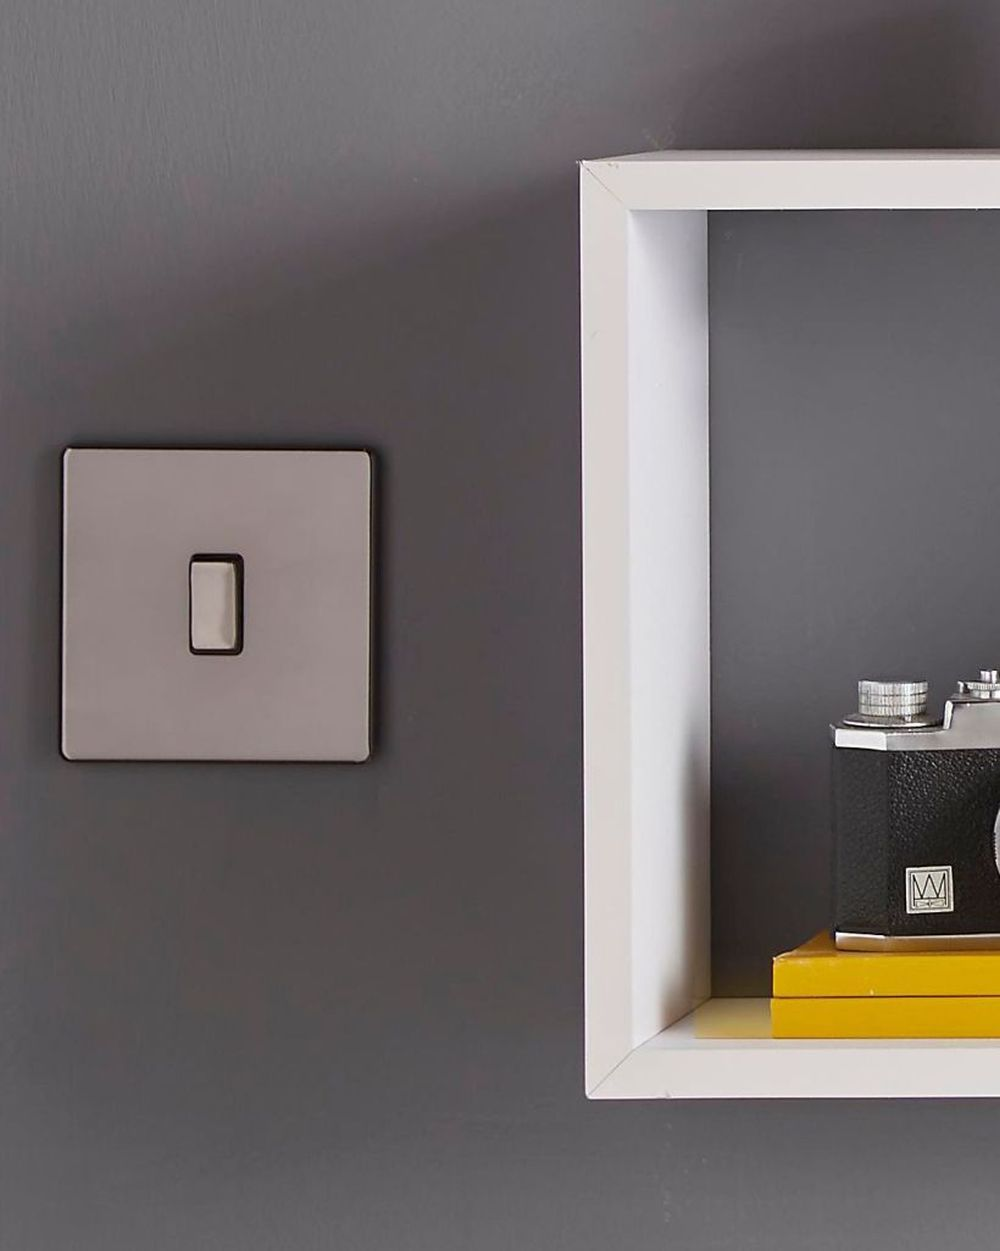 elegant modern mobile home style with grey light switch with white cubical shelving unit on wall